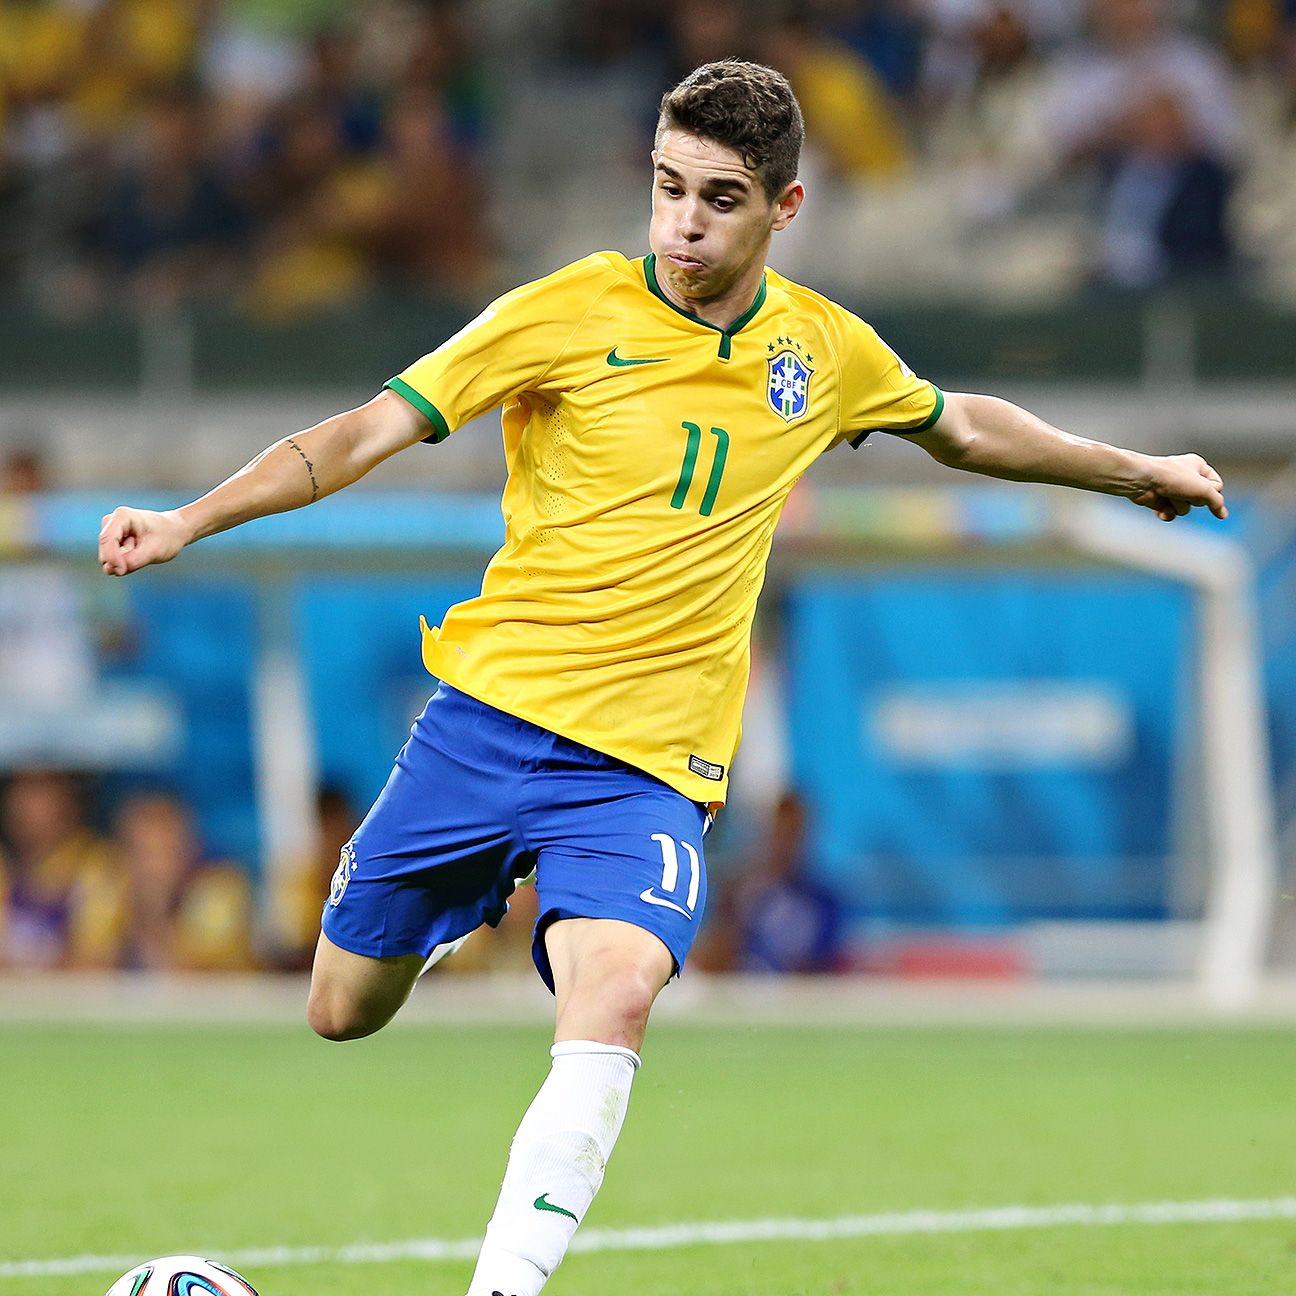 With two Copa Americas on the horizon, there is hardly any summer rest in sight for Chelsea's Brazilian midfielder Oscar.